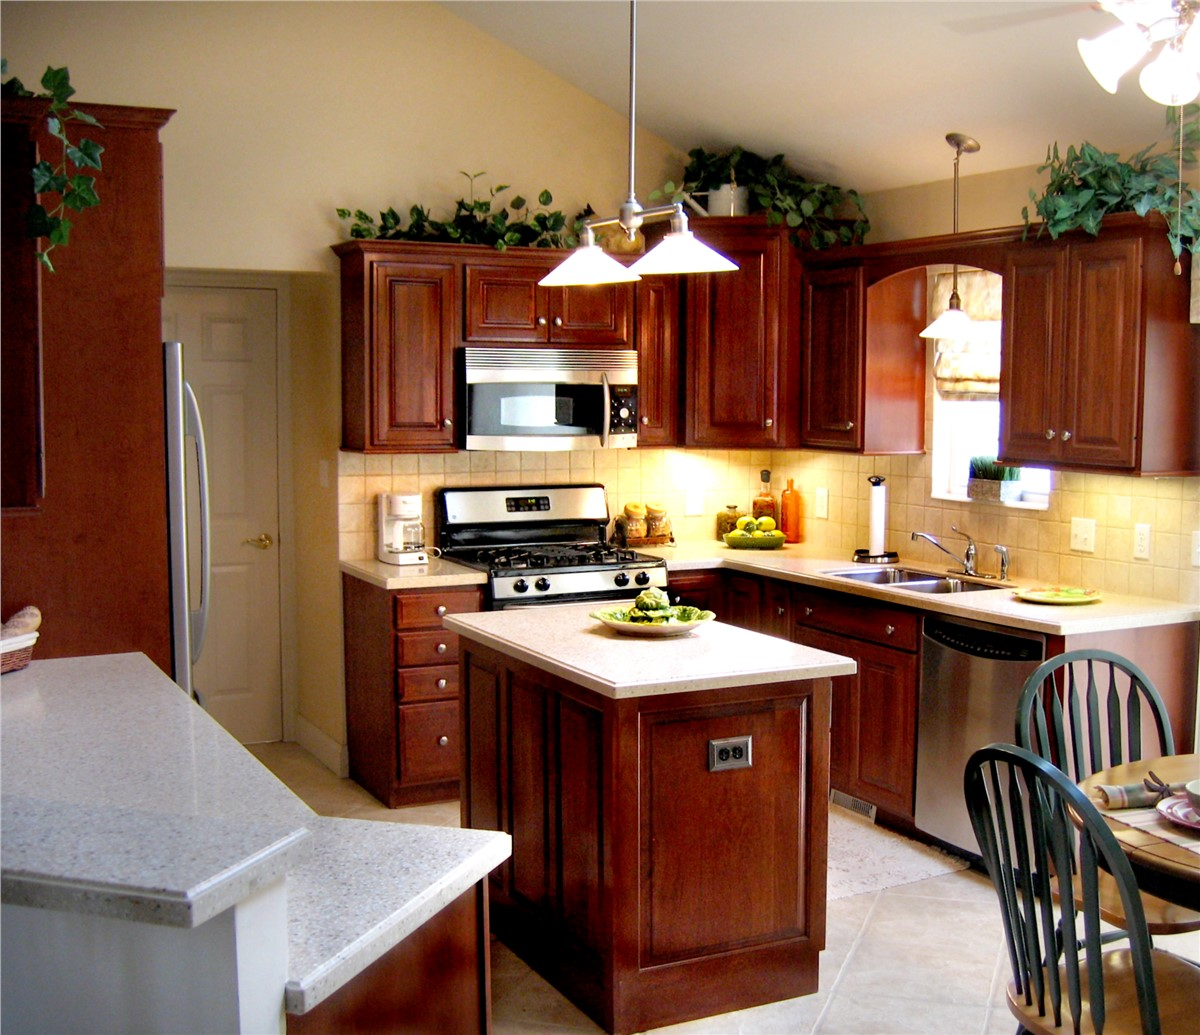 Repainting Old Kitchen Cabinets: Cabinet Refinishing Company